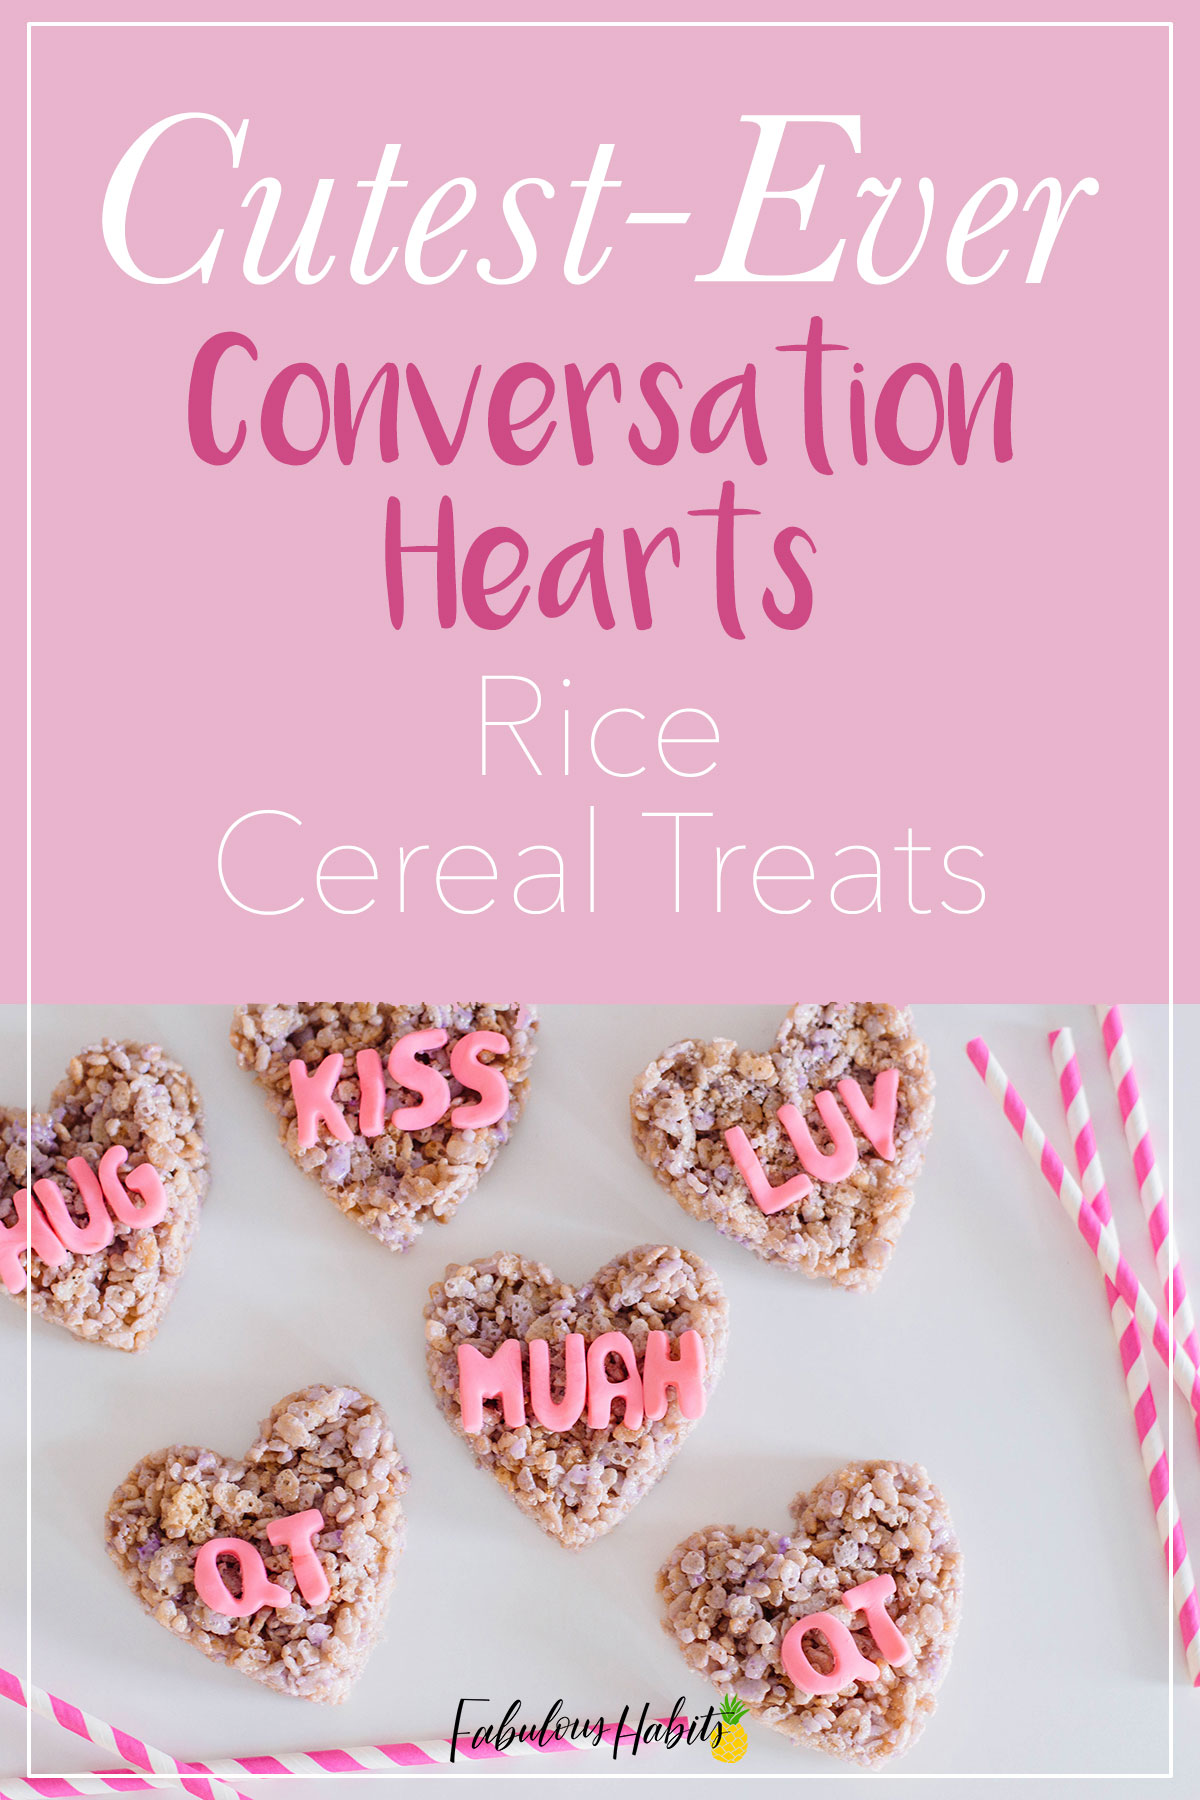 These Conversation Hearts Rice Cereal Treats are just perfect for your upcoming Valentine's Day celebrations! Give them a try! #valentinedesserts